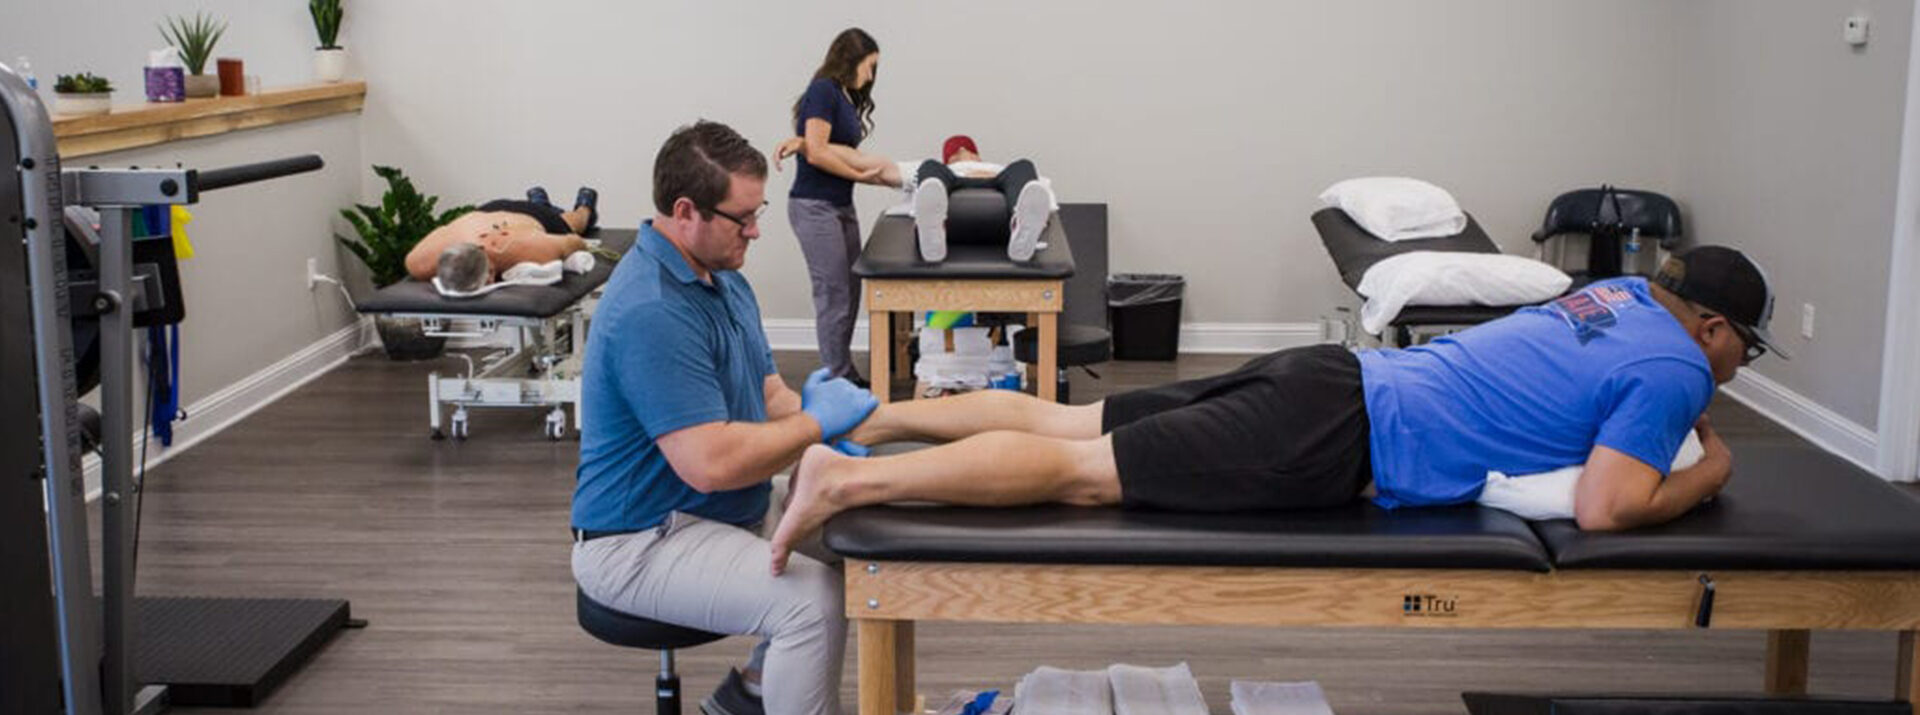 We are a unique